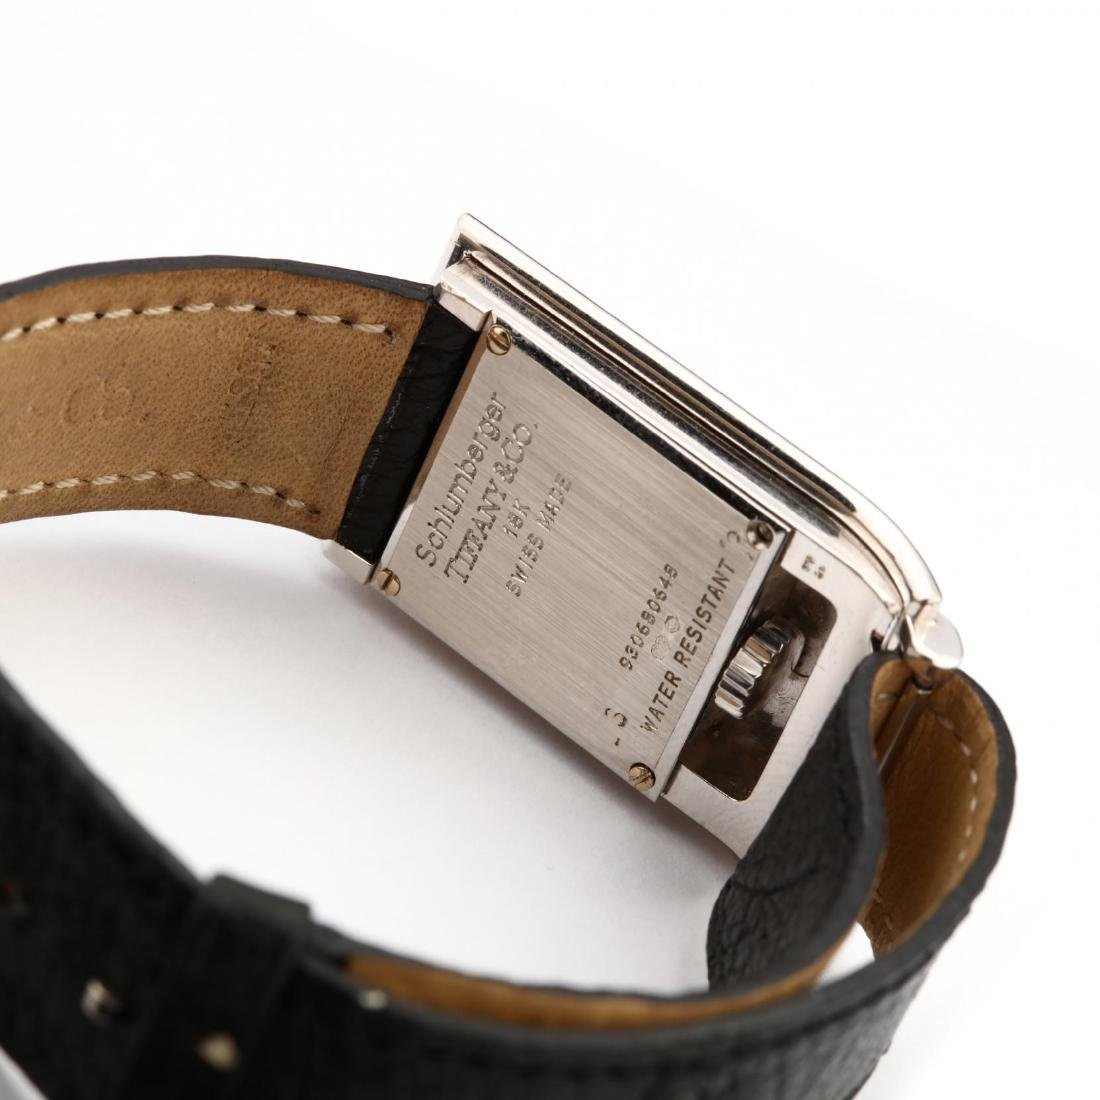 18KT White Gold Watch, Tiffany & Co. / Schlumberger - 2